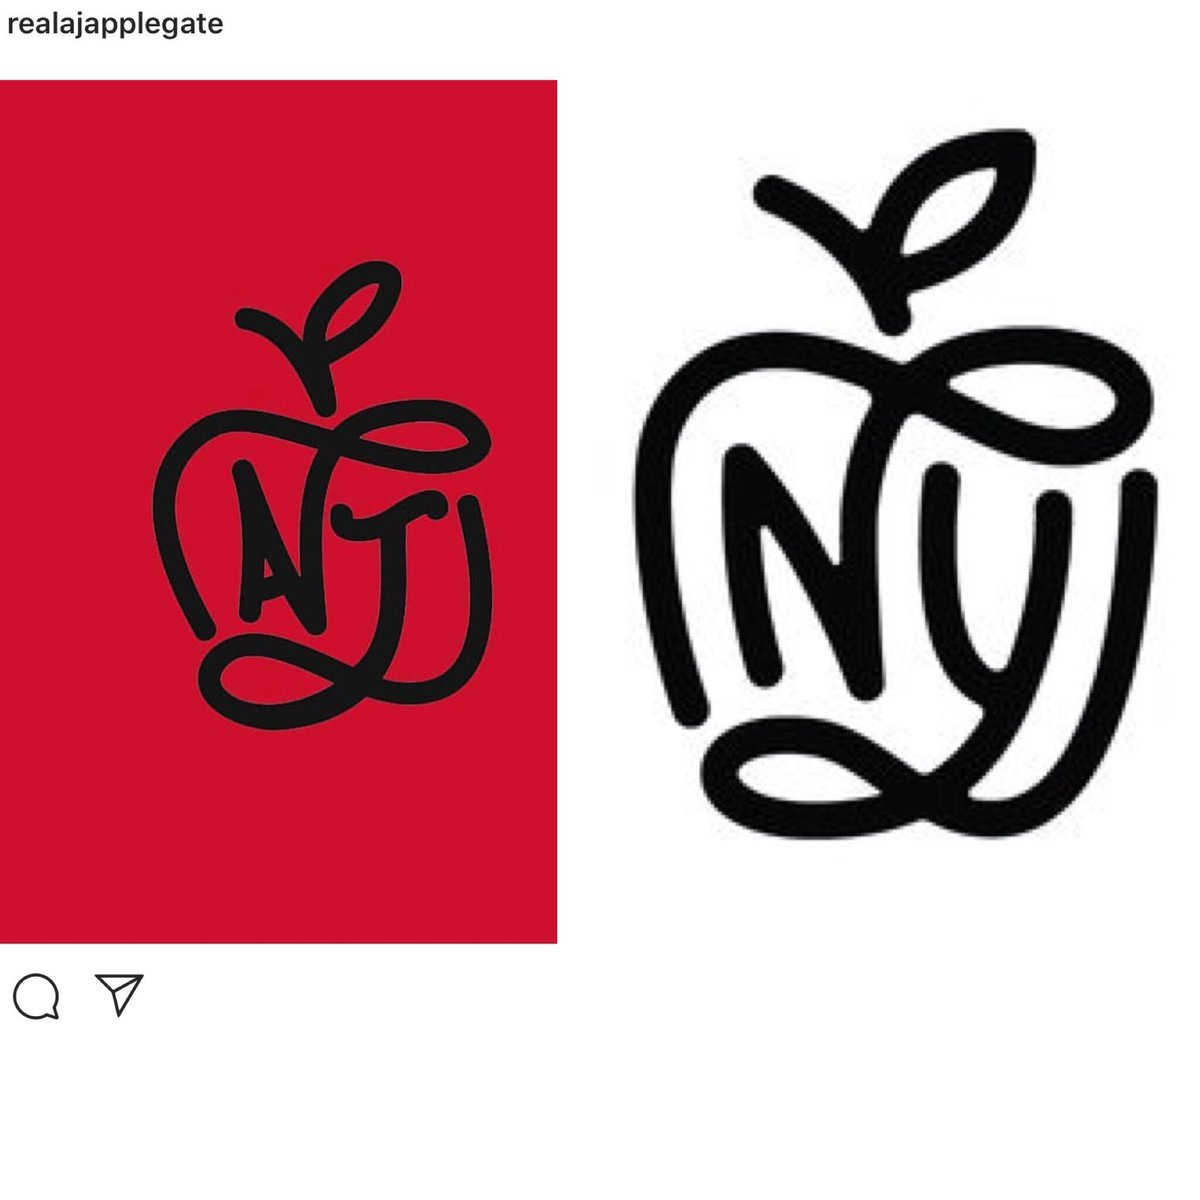 Designer when you have a porn star ajsapplebooty stealing your work where can i reach you with a dmca takedown my original work is on the right